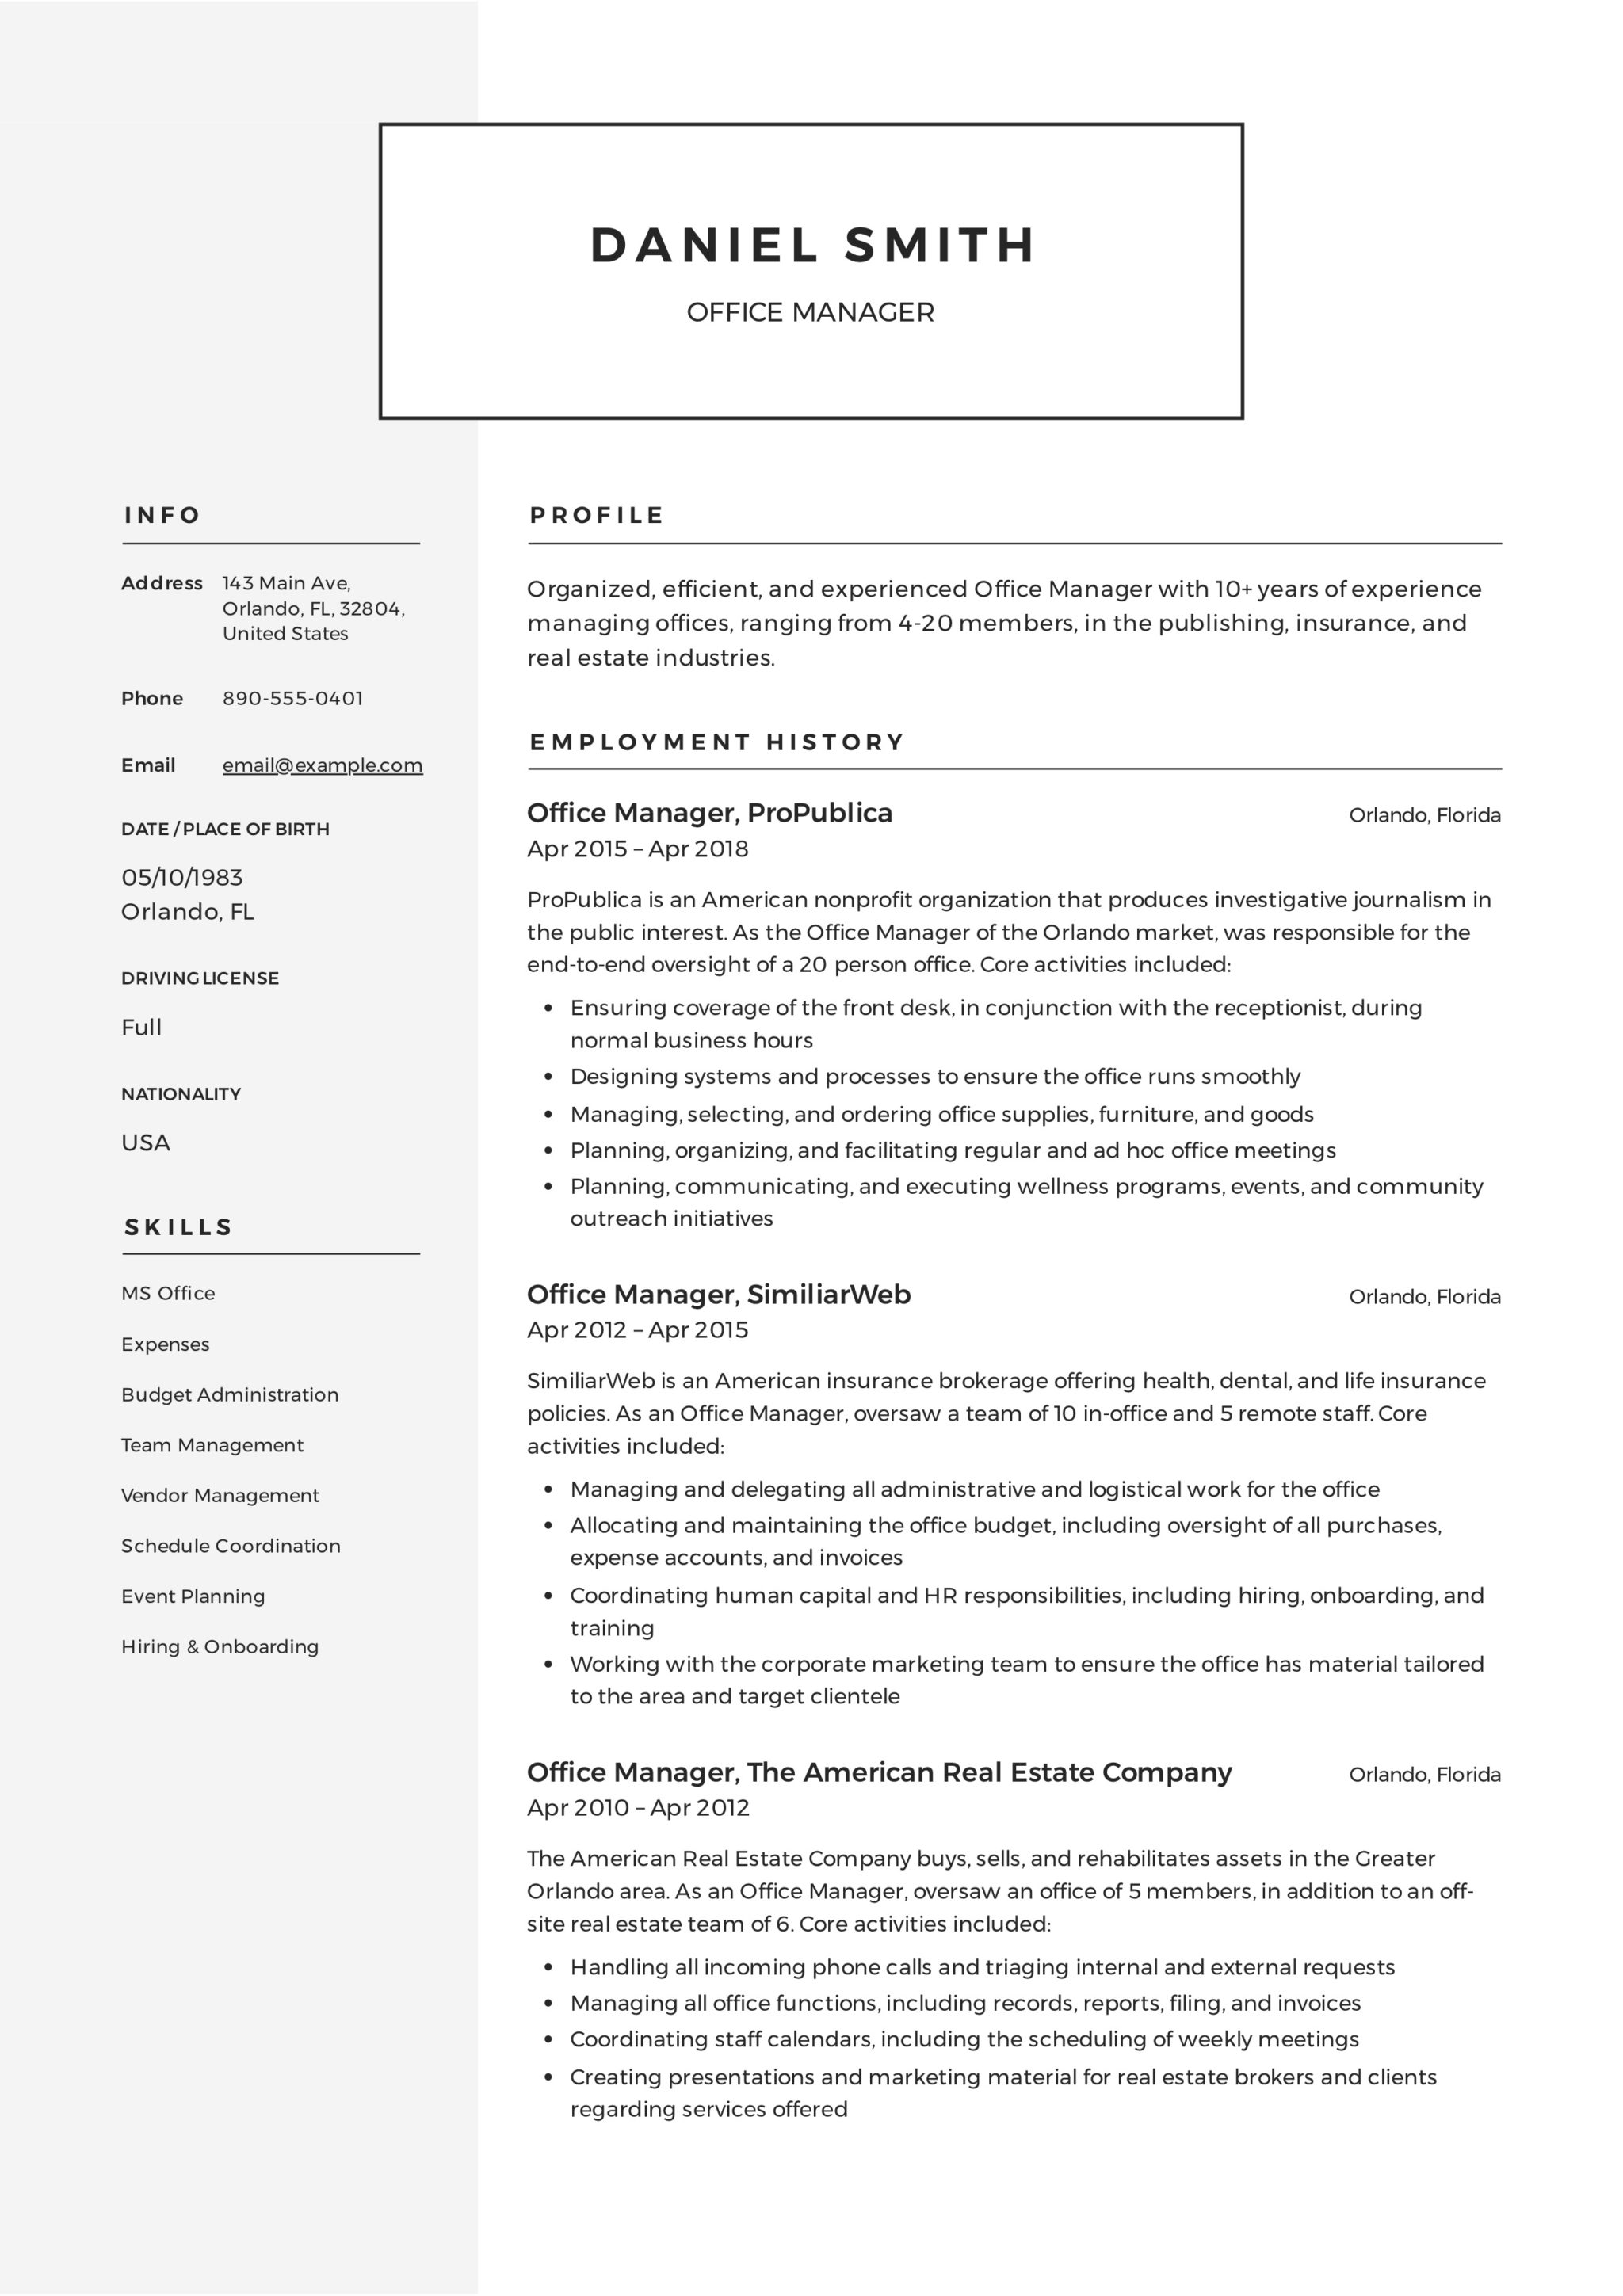 Guide Office Manager Resume 12 Samples Pdf 2019